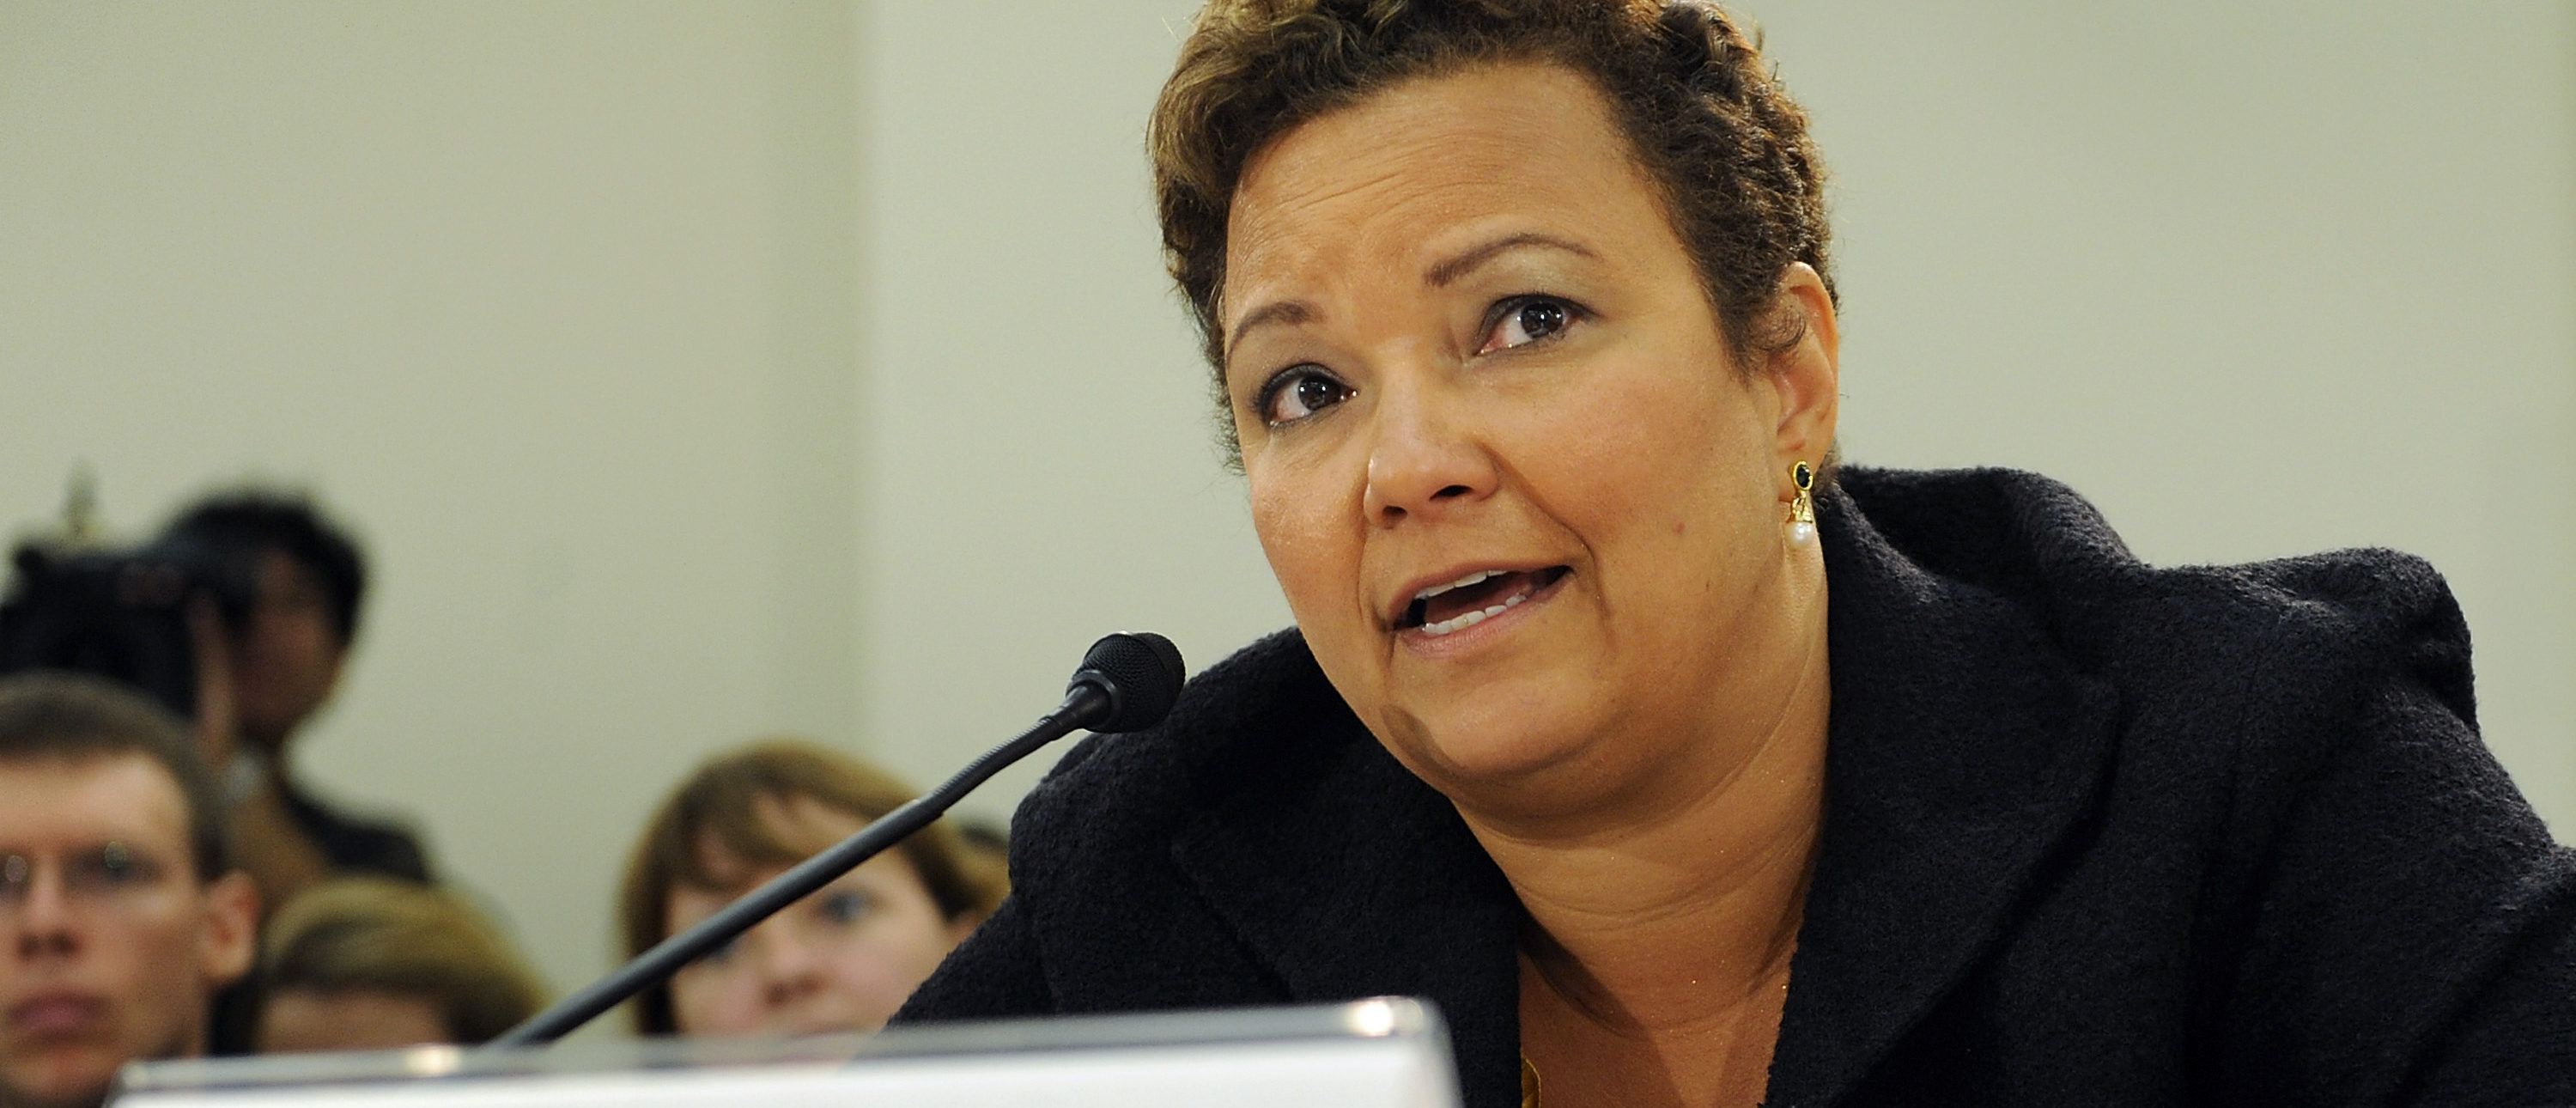 U.S. Environmental Protection Agency Administrator Lisa Jackson testifies at a hearing of the House Subcommittee on Oversight and Investigations on Capitol Hill in Washington, September 22, 2011.  REUTERS/Jonathan Ernst   (UNITED STATES | Don't Compare Pruitt To Jackson On Emails | Tags: POLITICS ENVIRONMENT